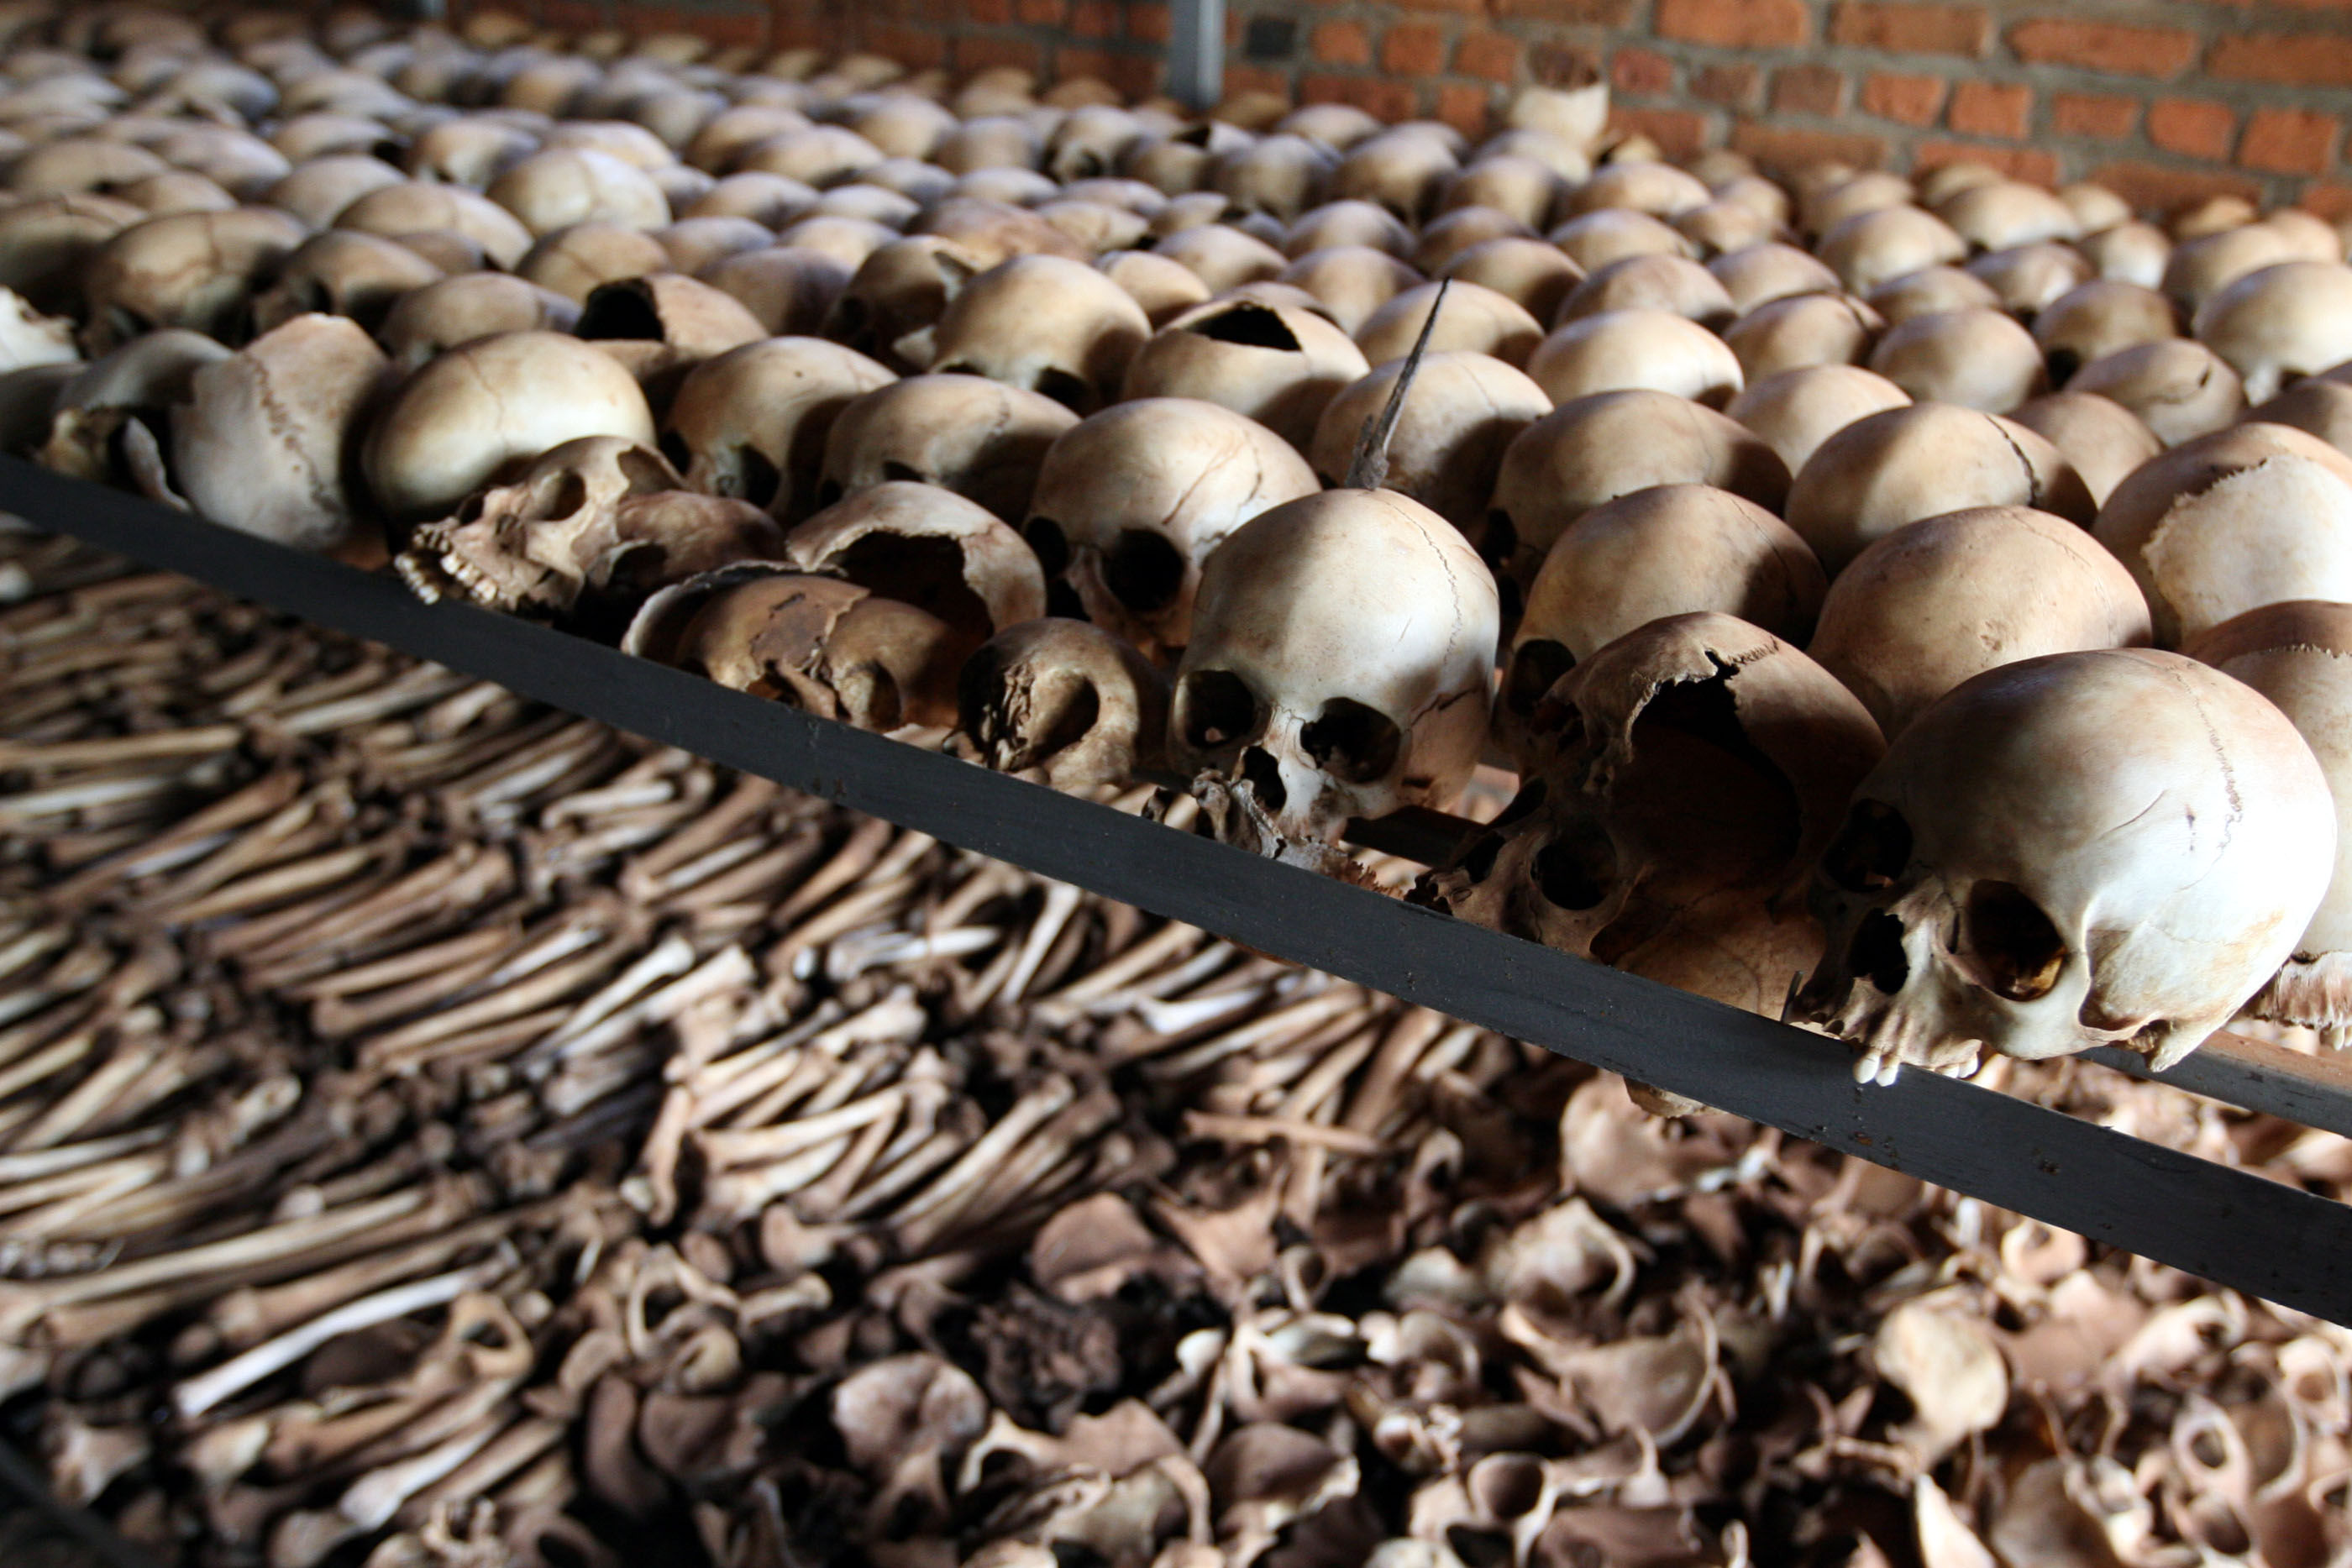 rwadan genocide The outreach programme on the rwanda genocide and the united nations focuses on preventing genocide and supporting survivors it draws attention to the lessons learnt from the rwanda genocide in .